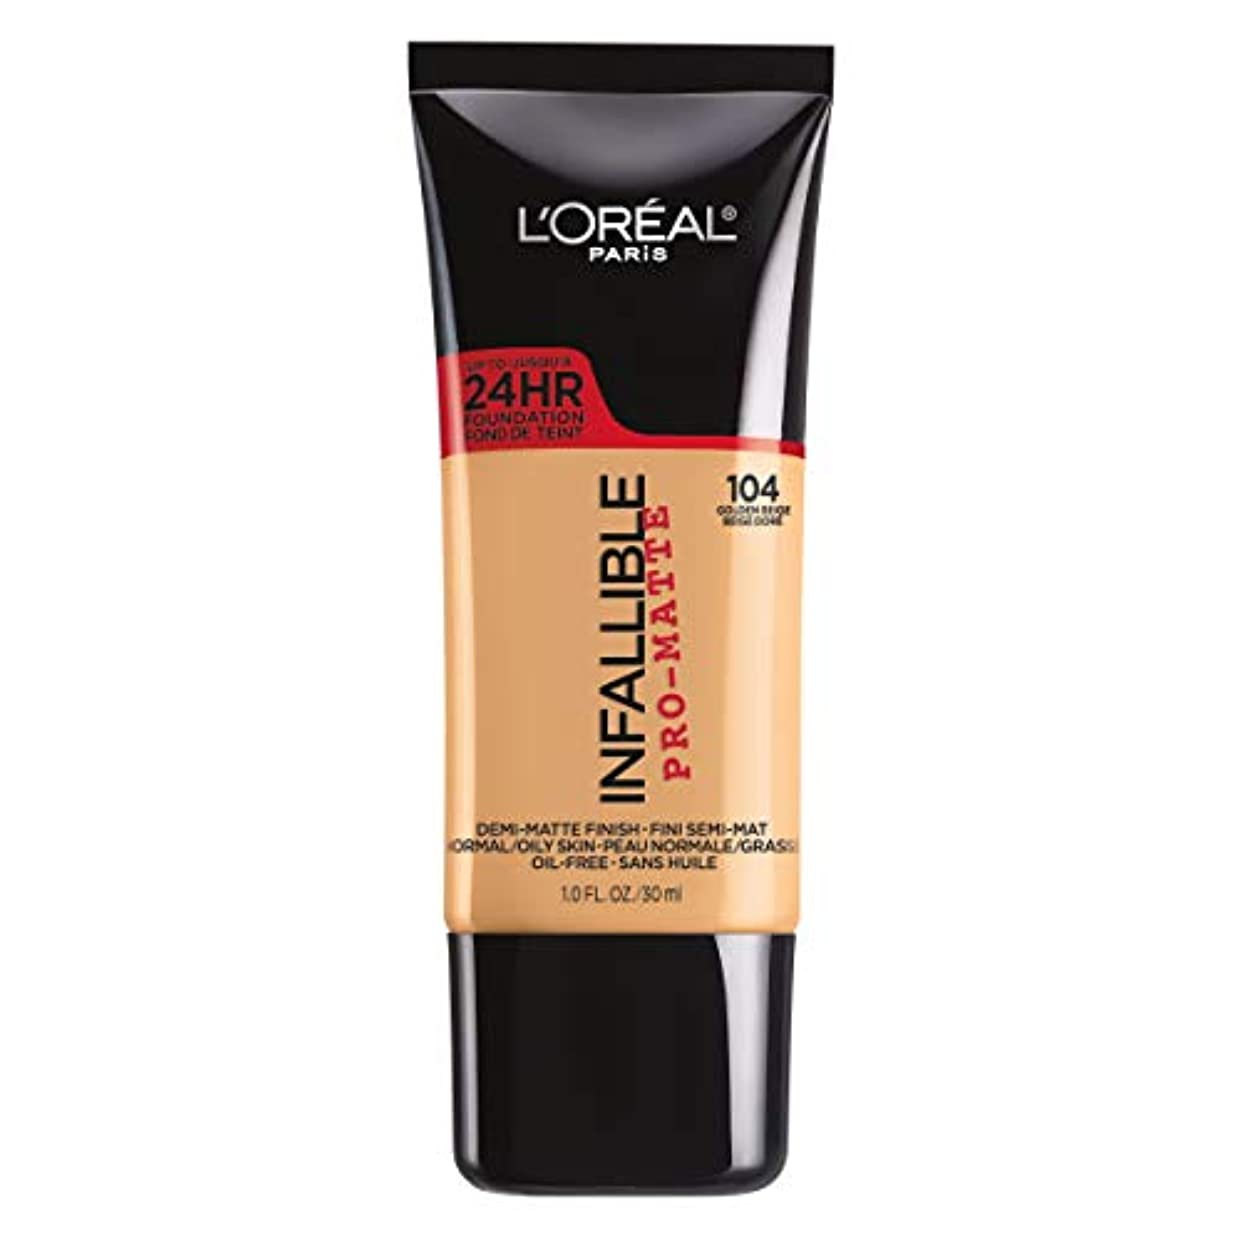 スプリット認めるスケートL'Oreal Paris Infallible Pro-Matte Foundation Makeup, 104 Golden Beige, 1 fl. oz[並行輸入品]